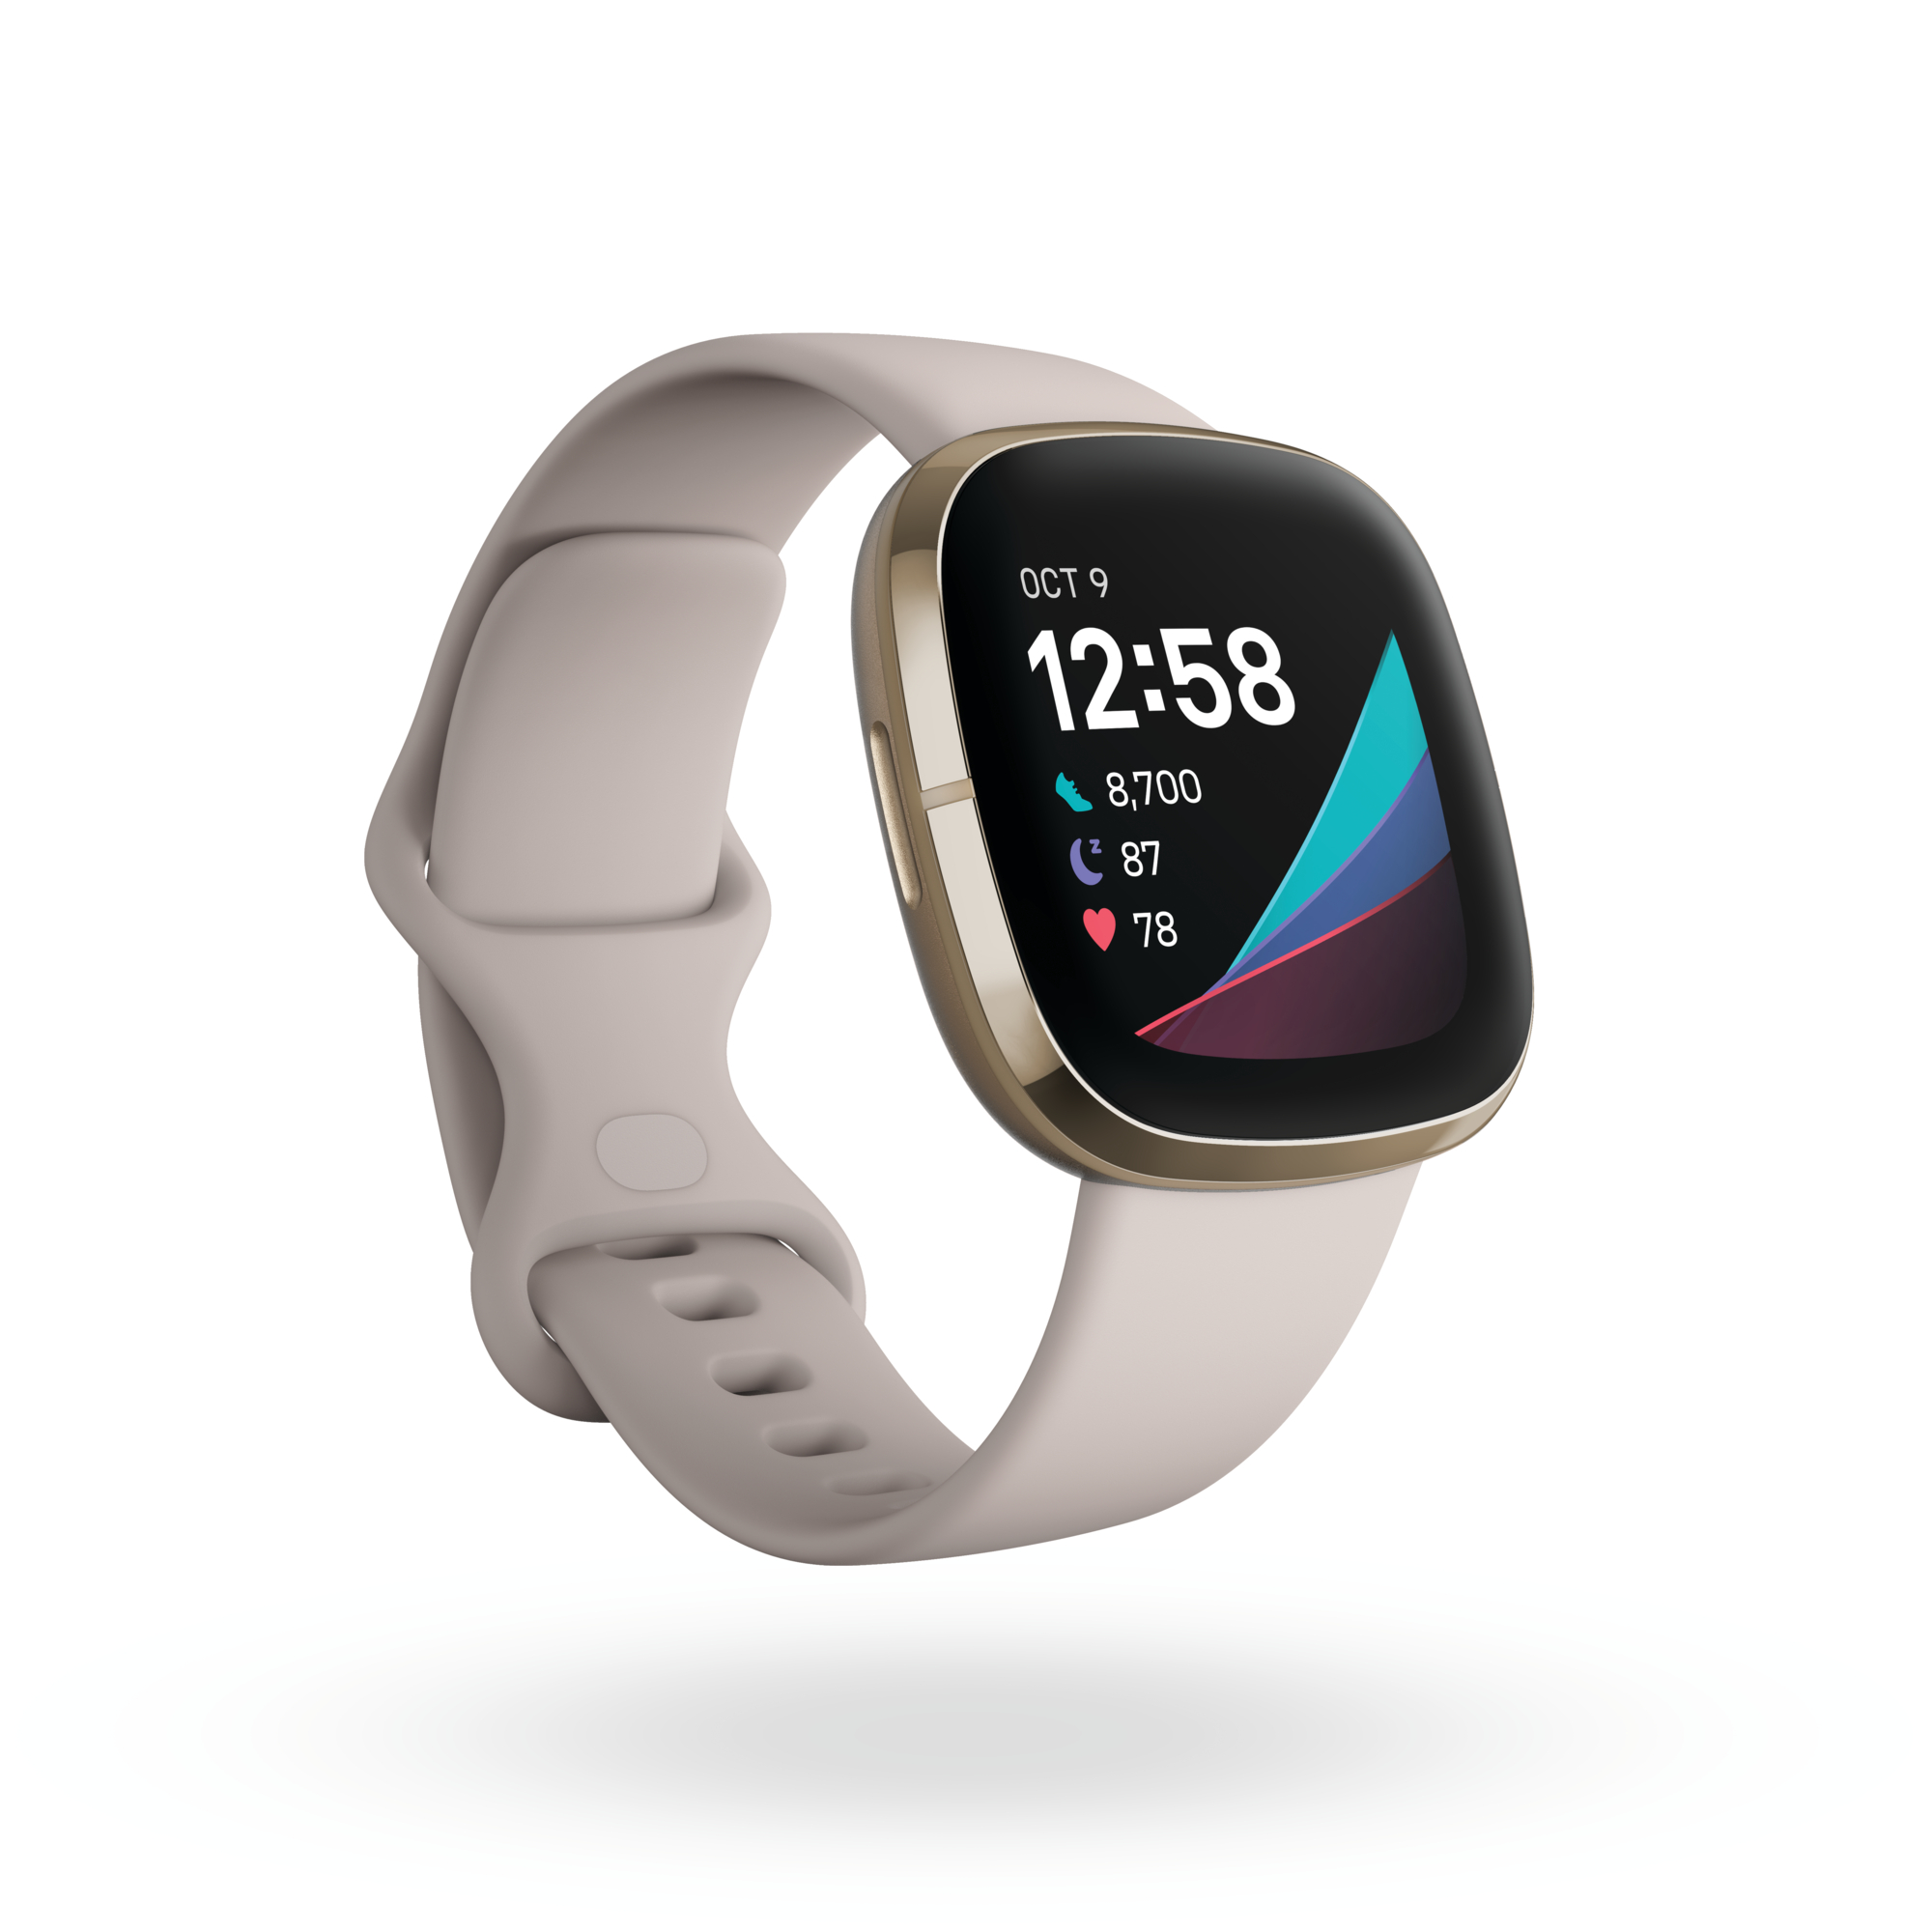 Fitbit_Sense_Render_3QTR_Core_Lunar_White_Soft_Gold_Clock_Default_Shadow